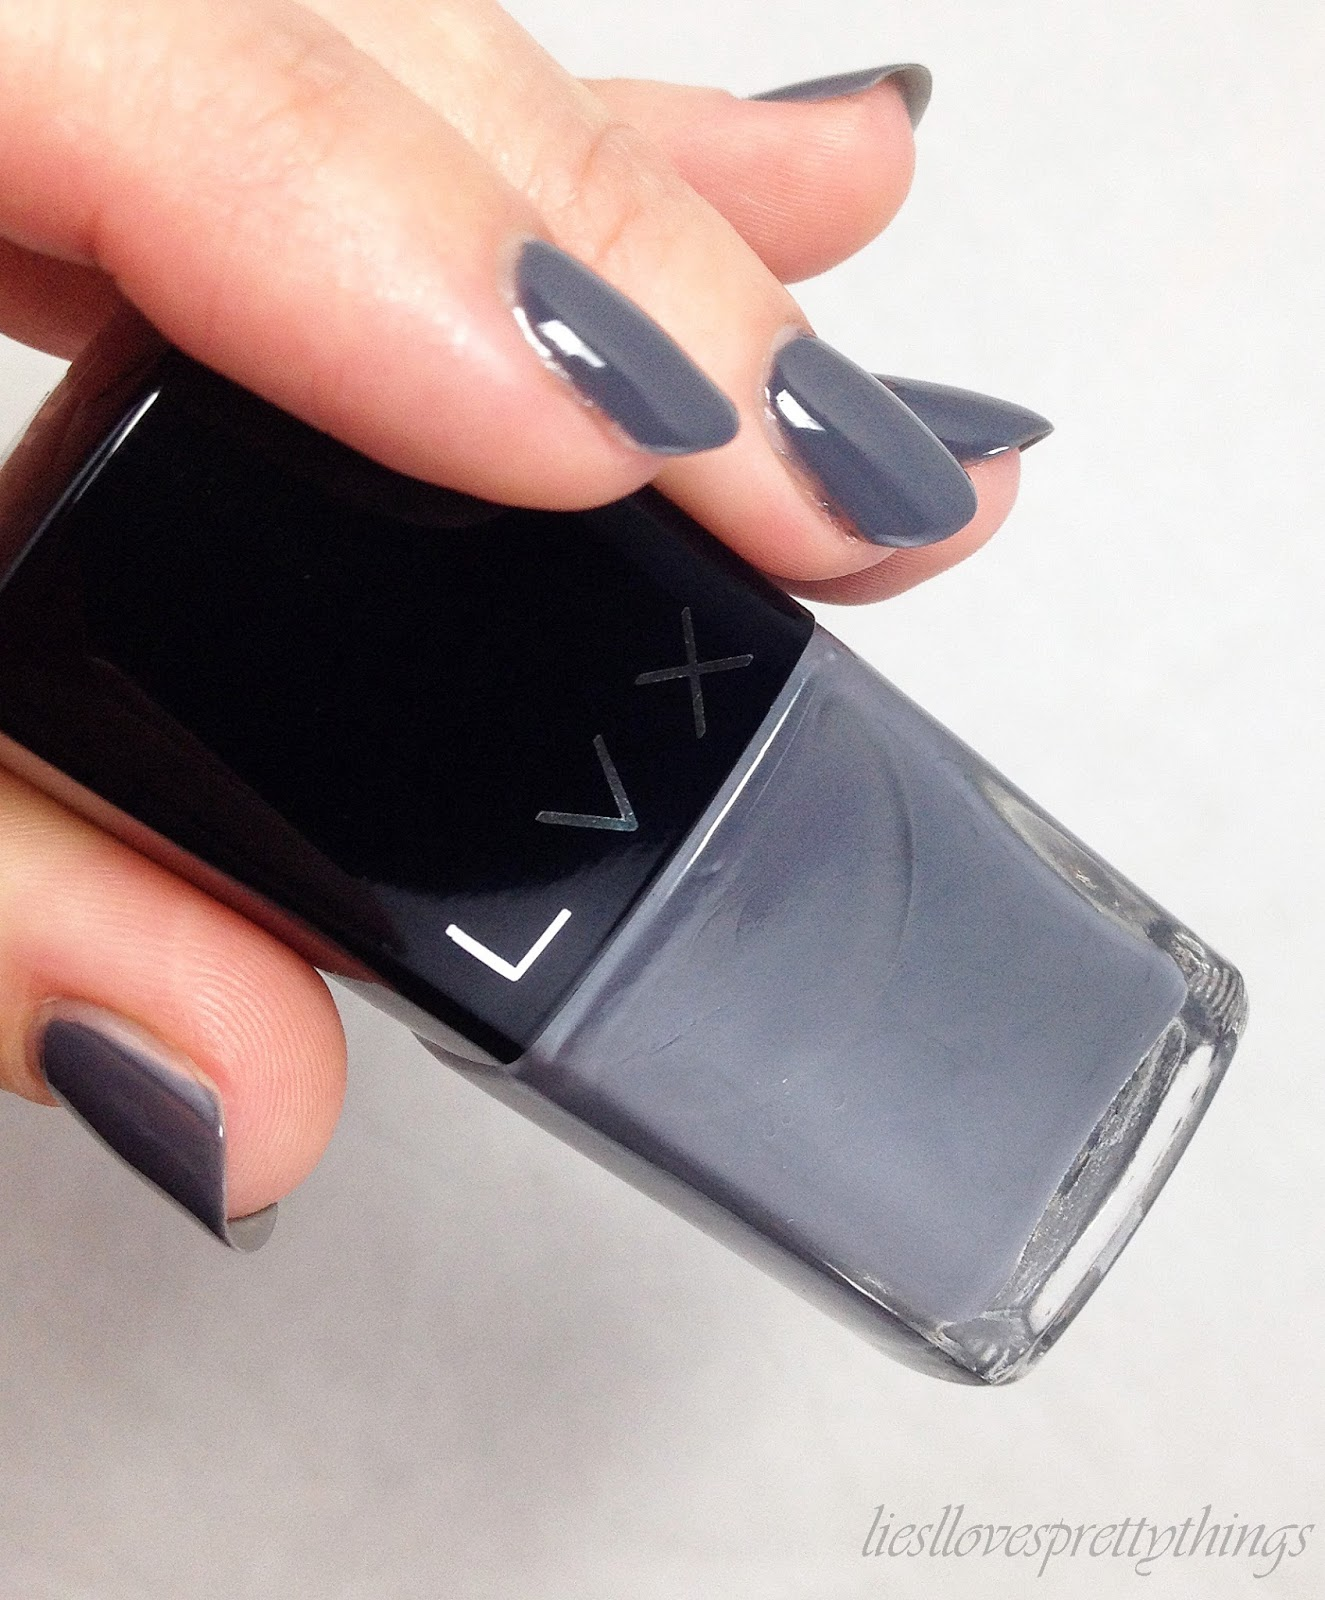 LVX Anthracite fall 2014 swatch and review